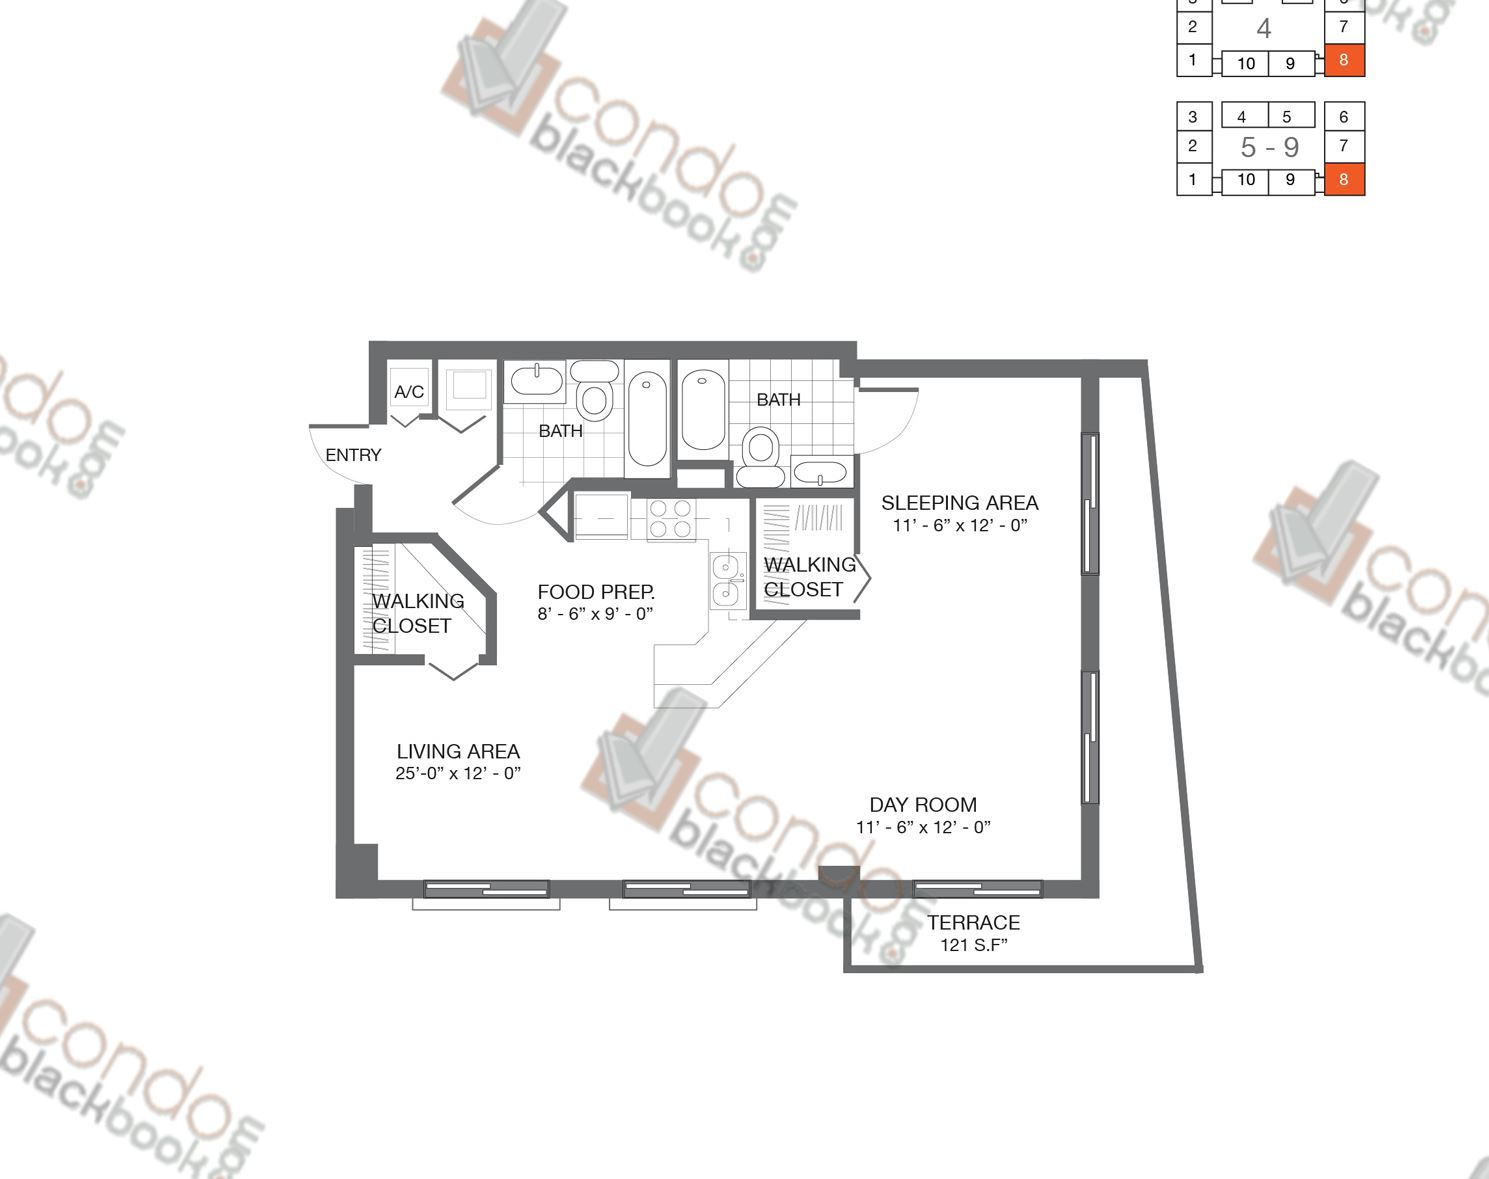 Floor plan for Bay Lofts Edgewater Miami, model Loft 8, line 08, 2/2 bedrooms, 965 sq ft